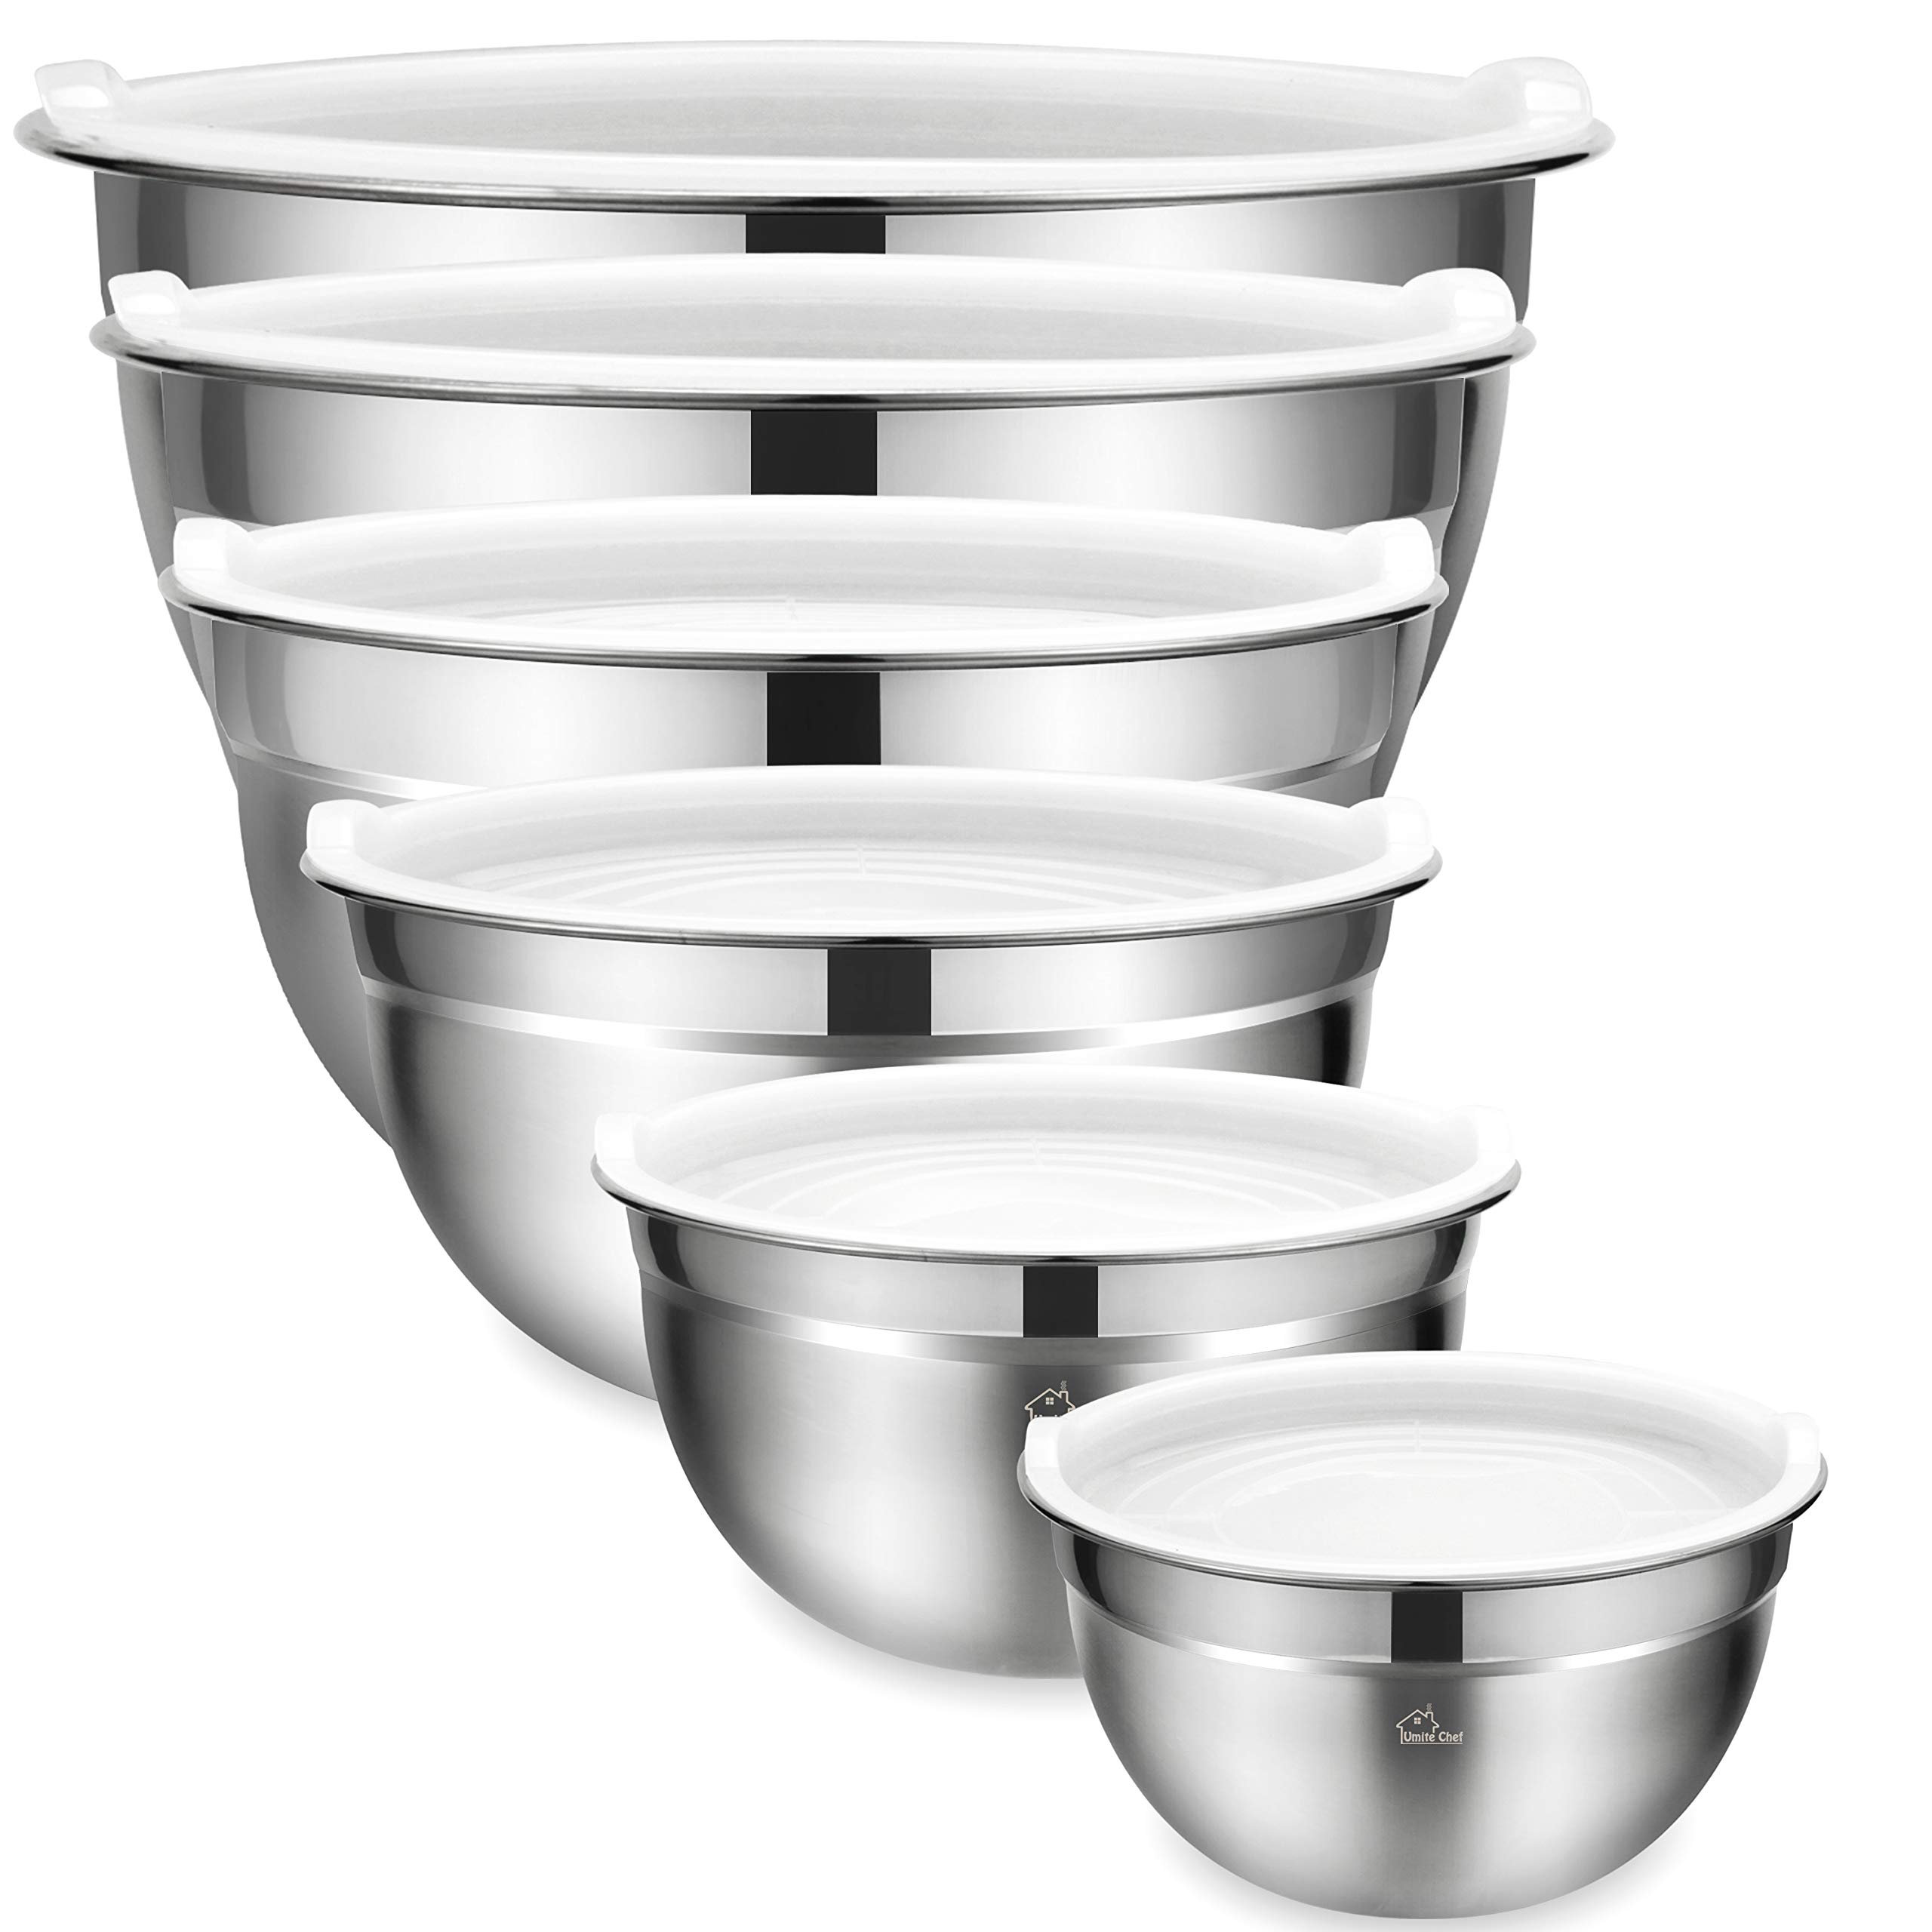 Mixing Bowls Set of 6, Premium Stainless Steel Mixing Bowl with Airtight Lids by Umite Chef, Great for Mixing, Beating Bowls Nesting & Stackable for Convenient Storage